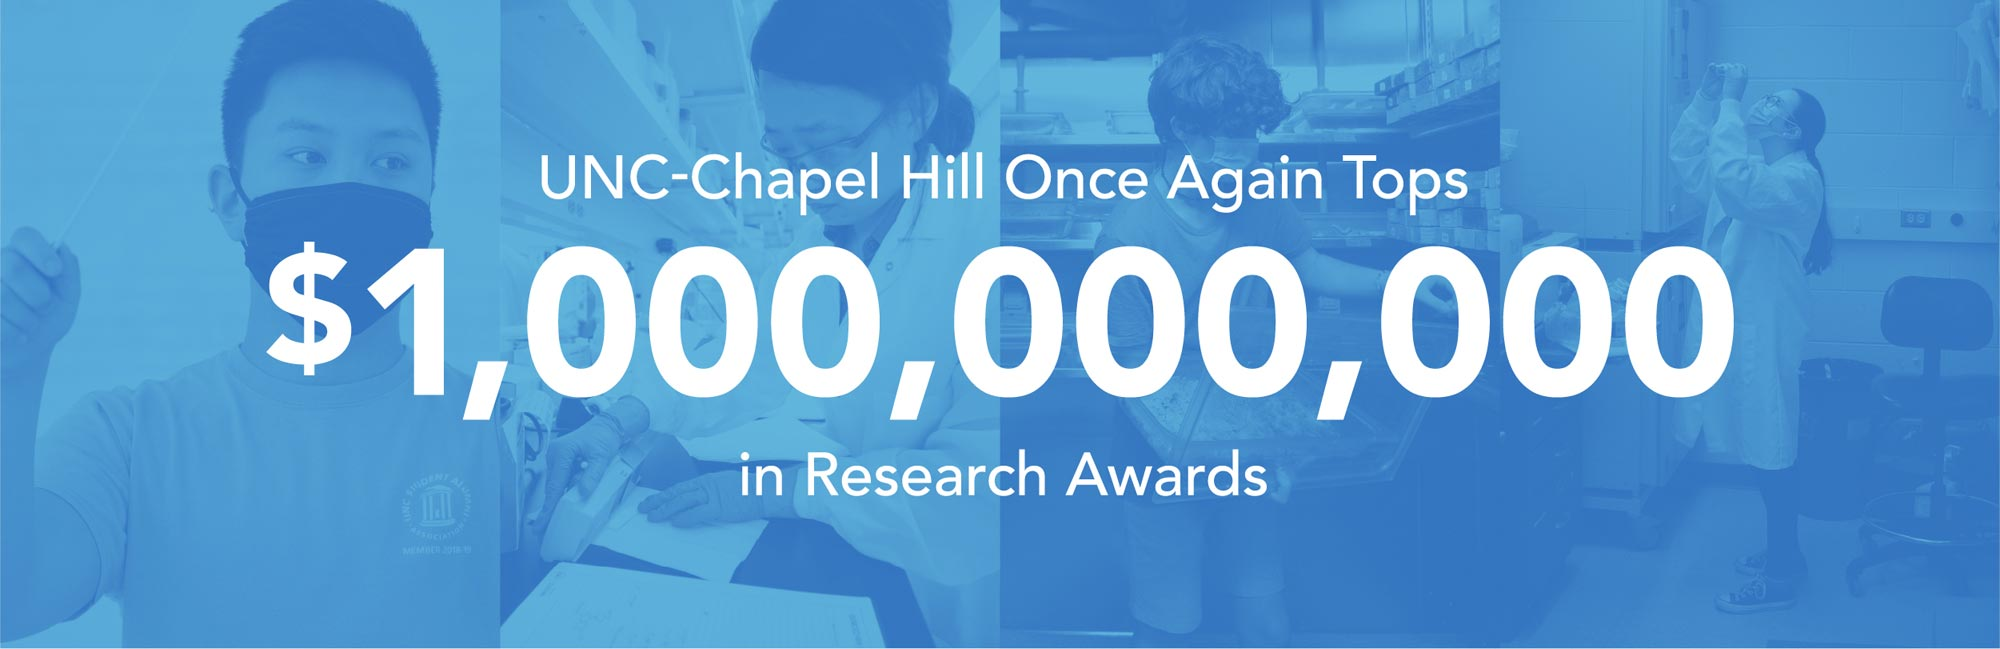 UNC-Chapel Hill Once Again Tops One Billion Dollars in Research Awards